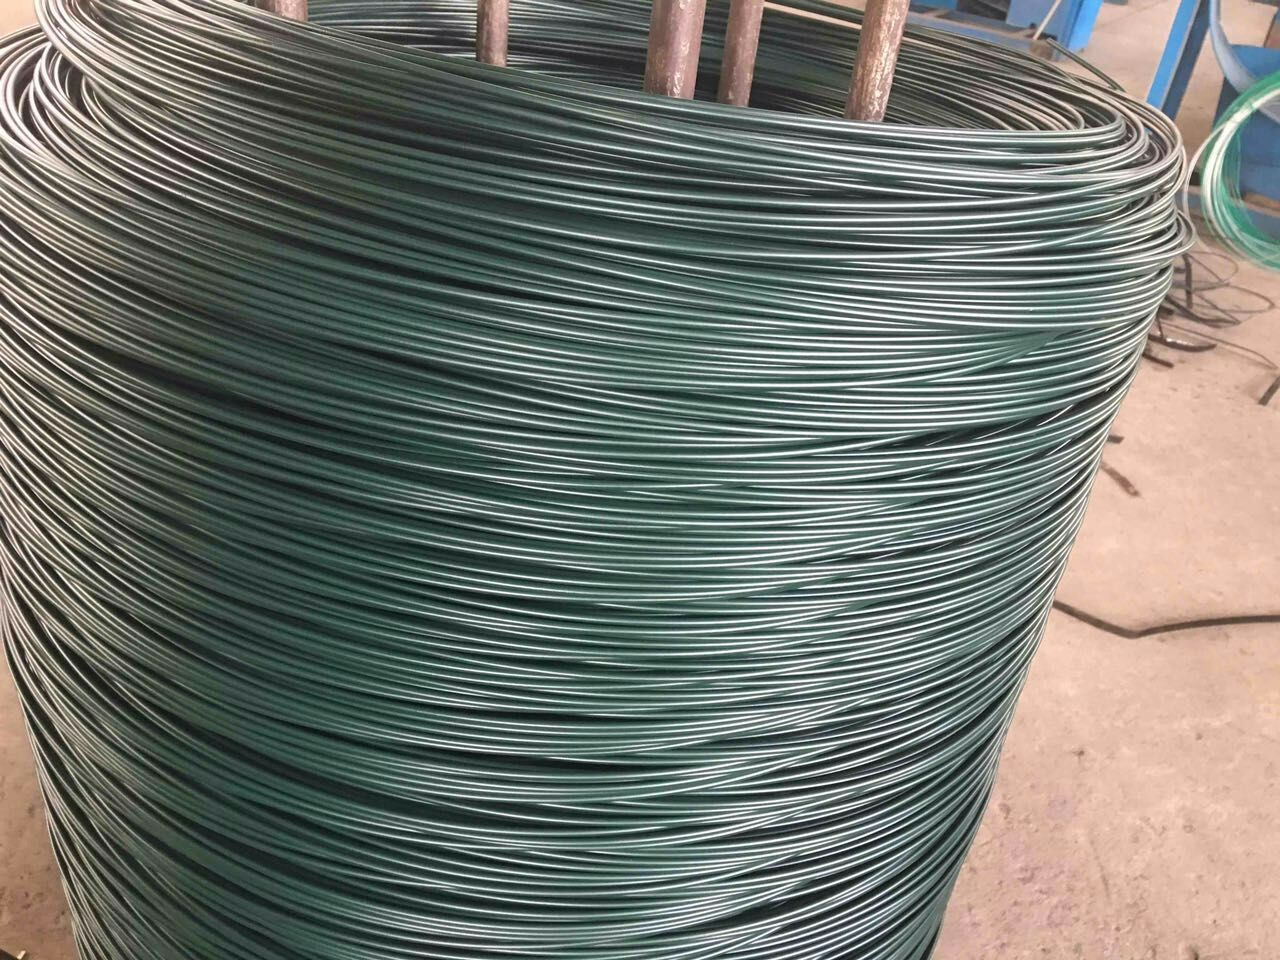 PVC coated wire mesh   PVC coated wire fencing   PVC coated wire netting